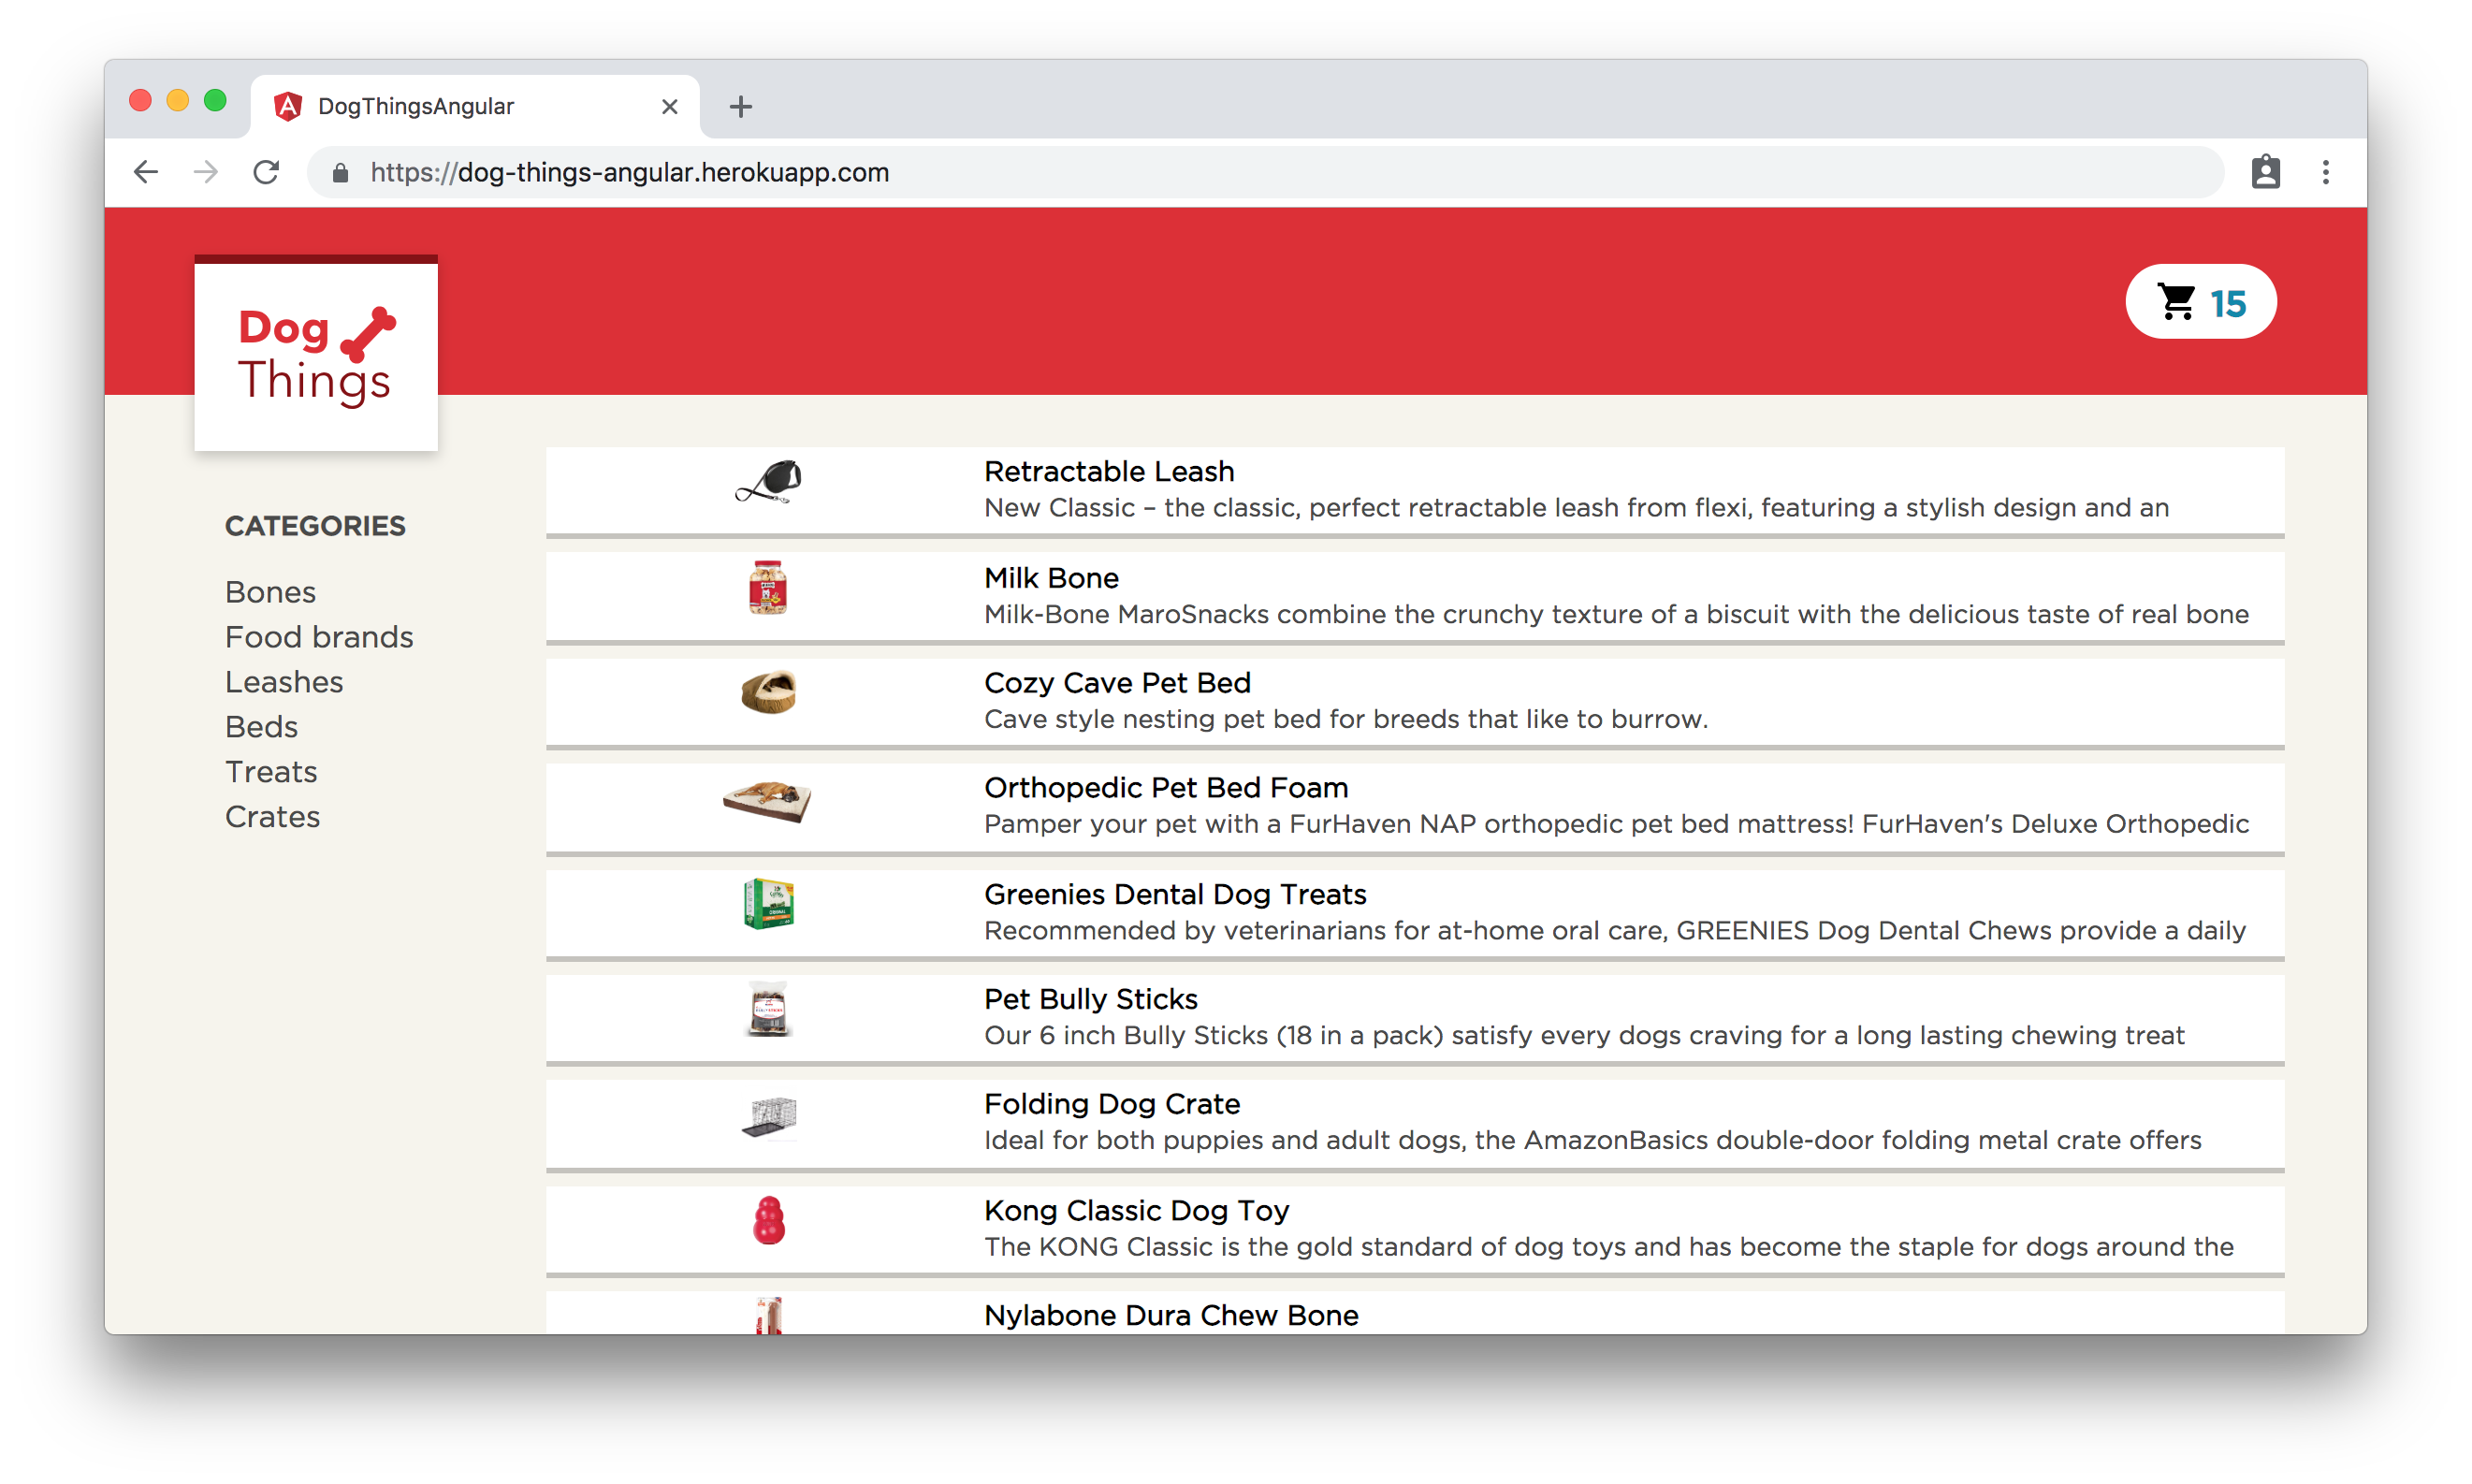 The Dog Things example app for Angular